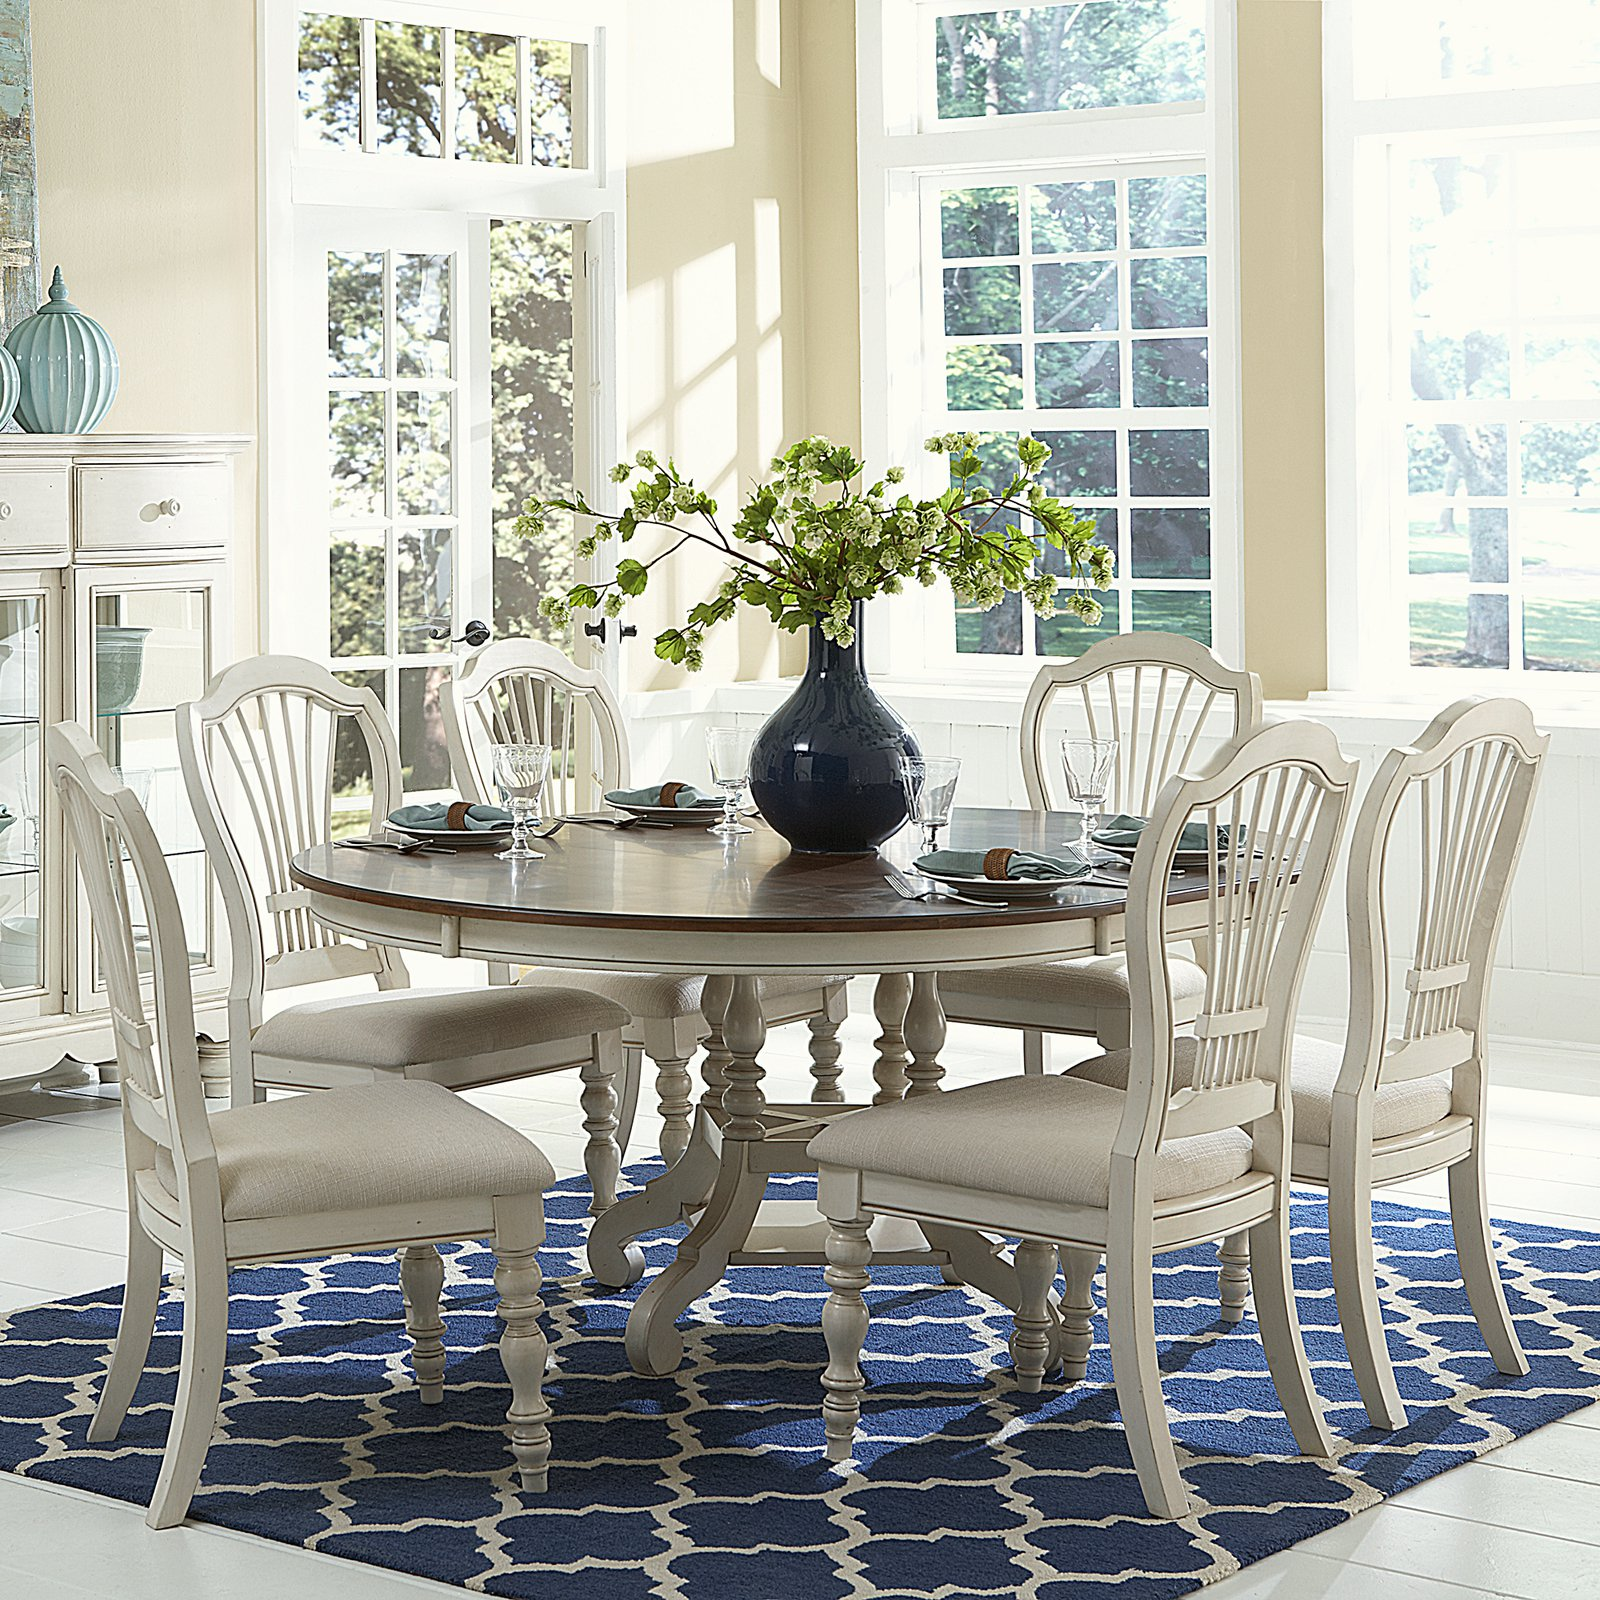 Hillsdale Furniture Pine Island 7-Piece Round Dining Set with Wheat Back Chairs